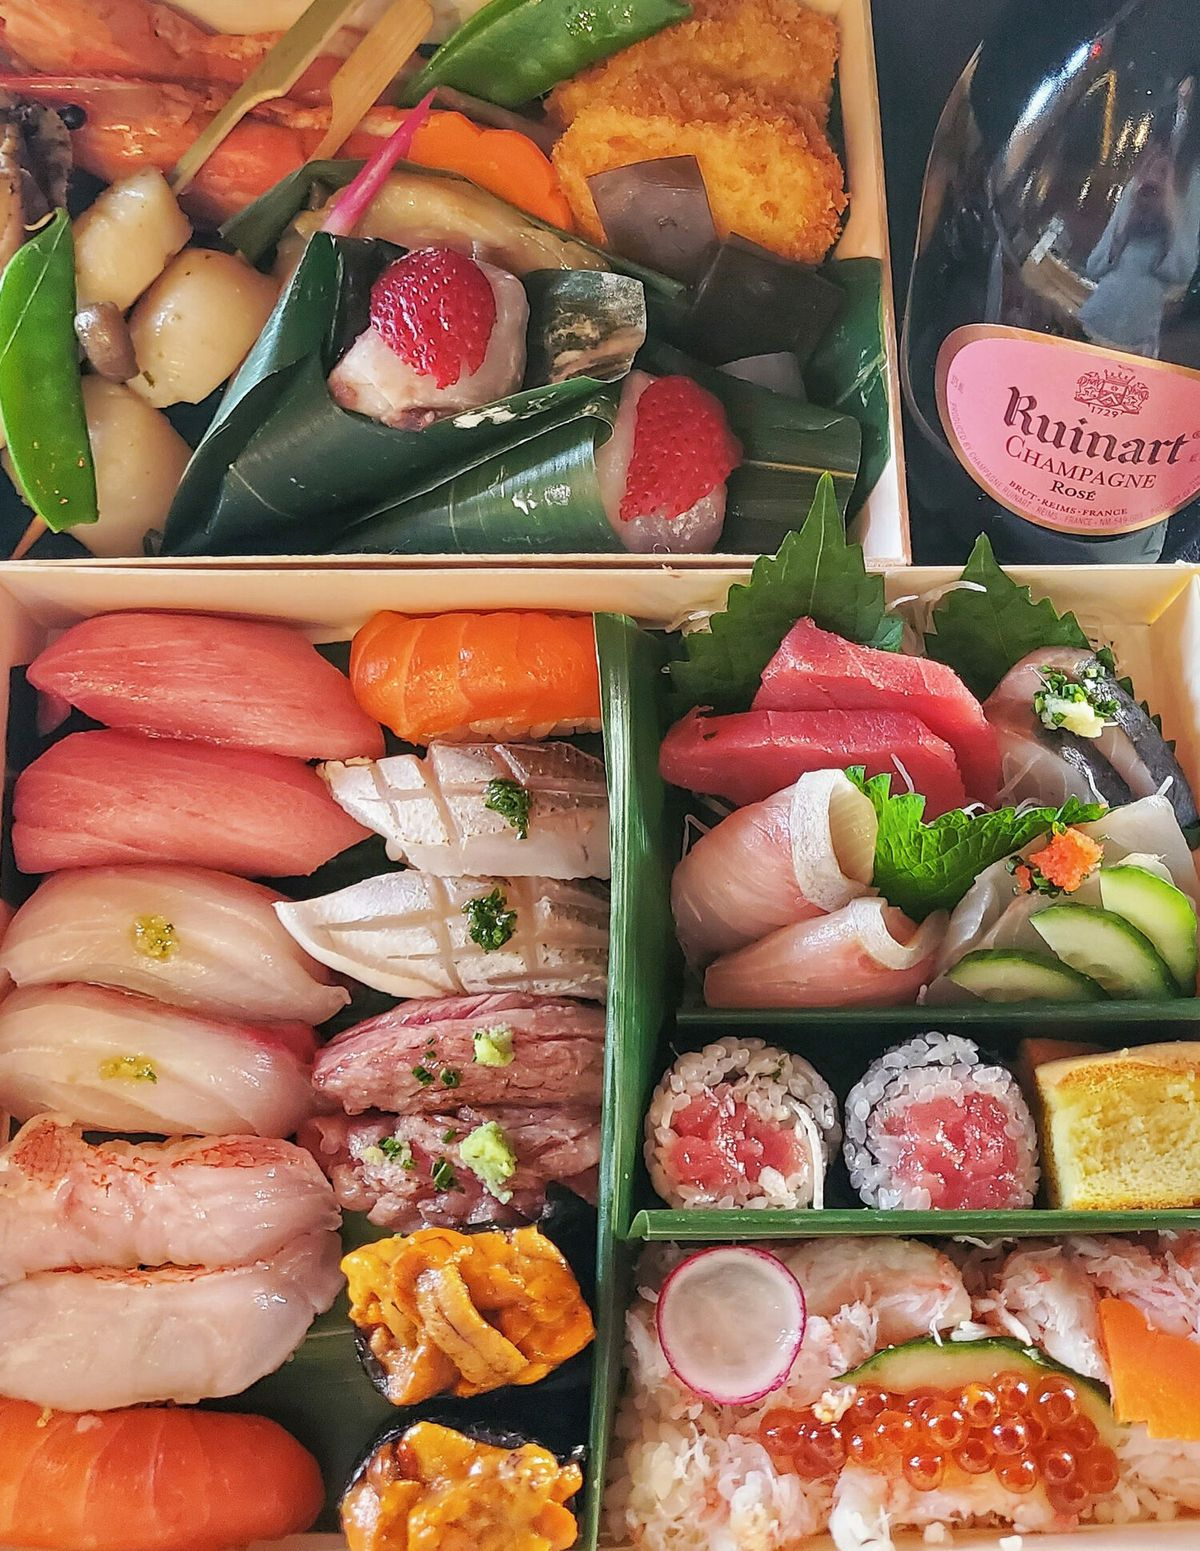 Valentine's Day takeout option from Omakase, a box full of colorful sushi and veggies. There's a bottle of champagne in the top right corner.